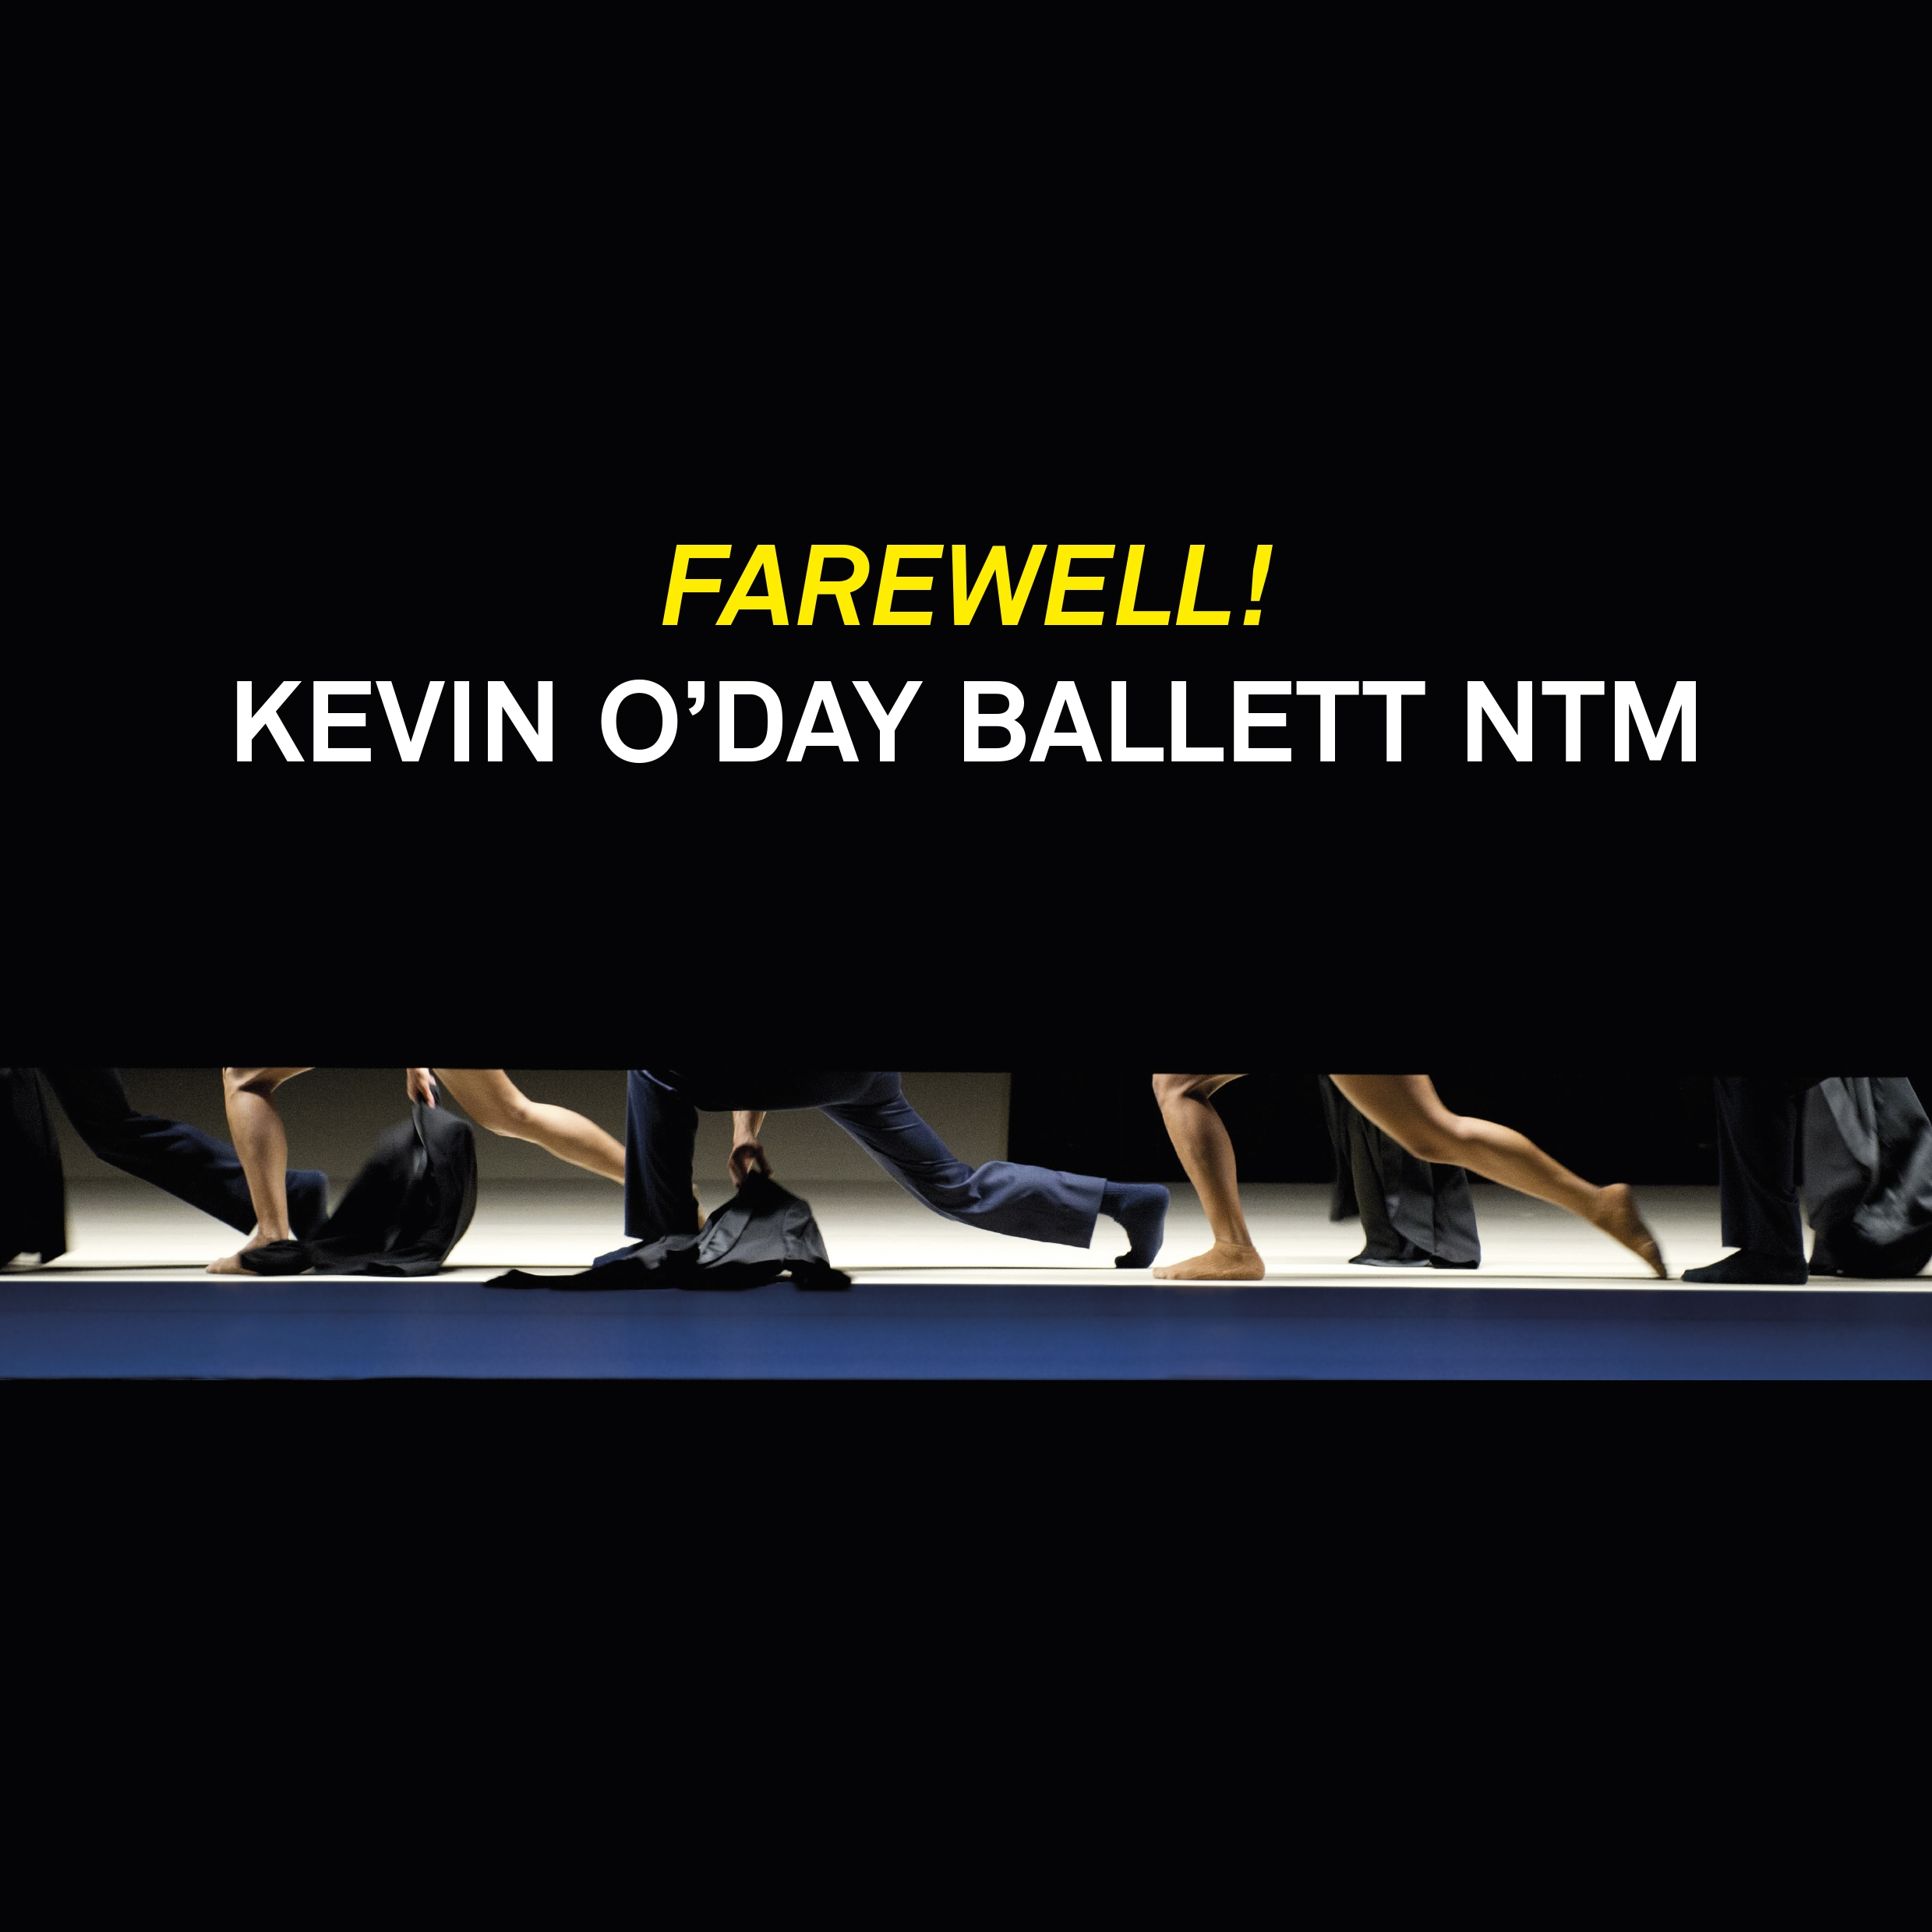 Farewell Kevin O`Day Ballett NTM